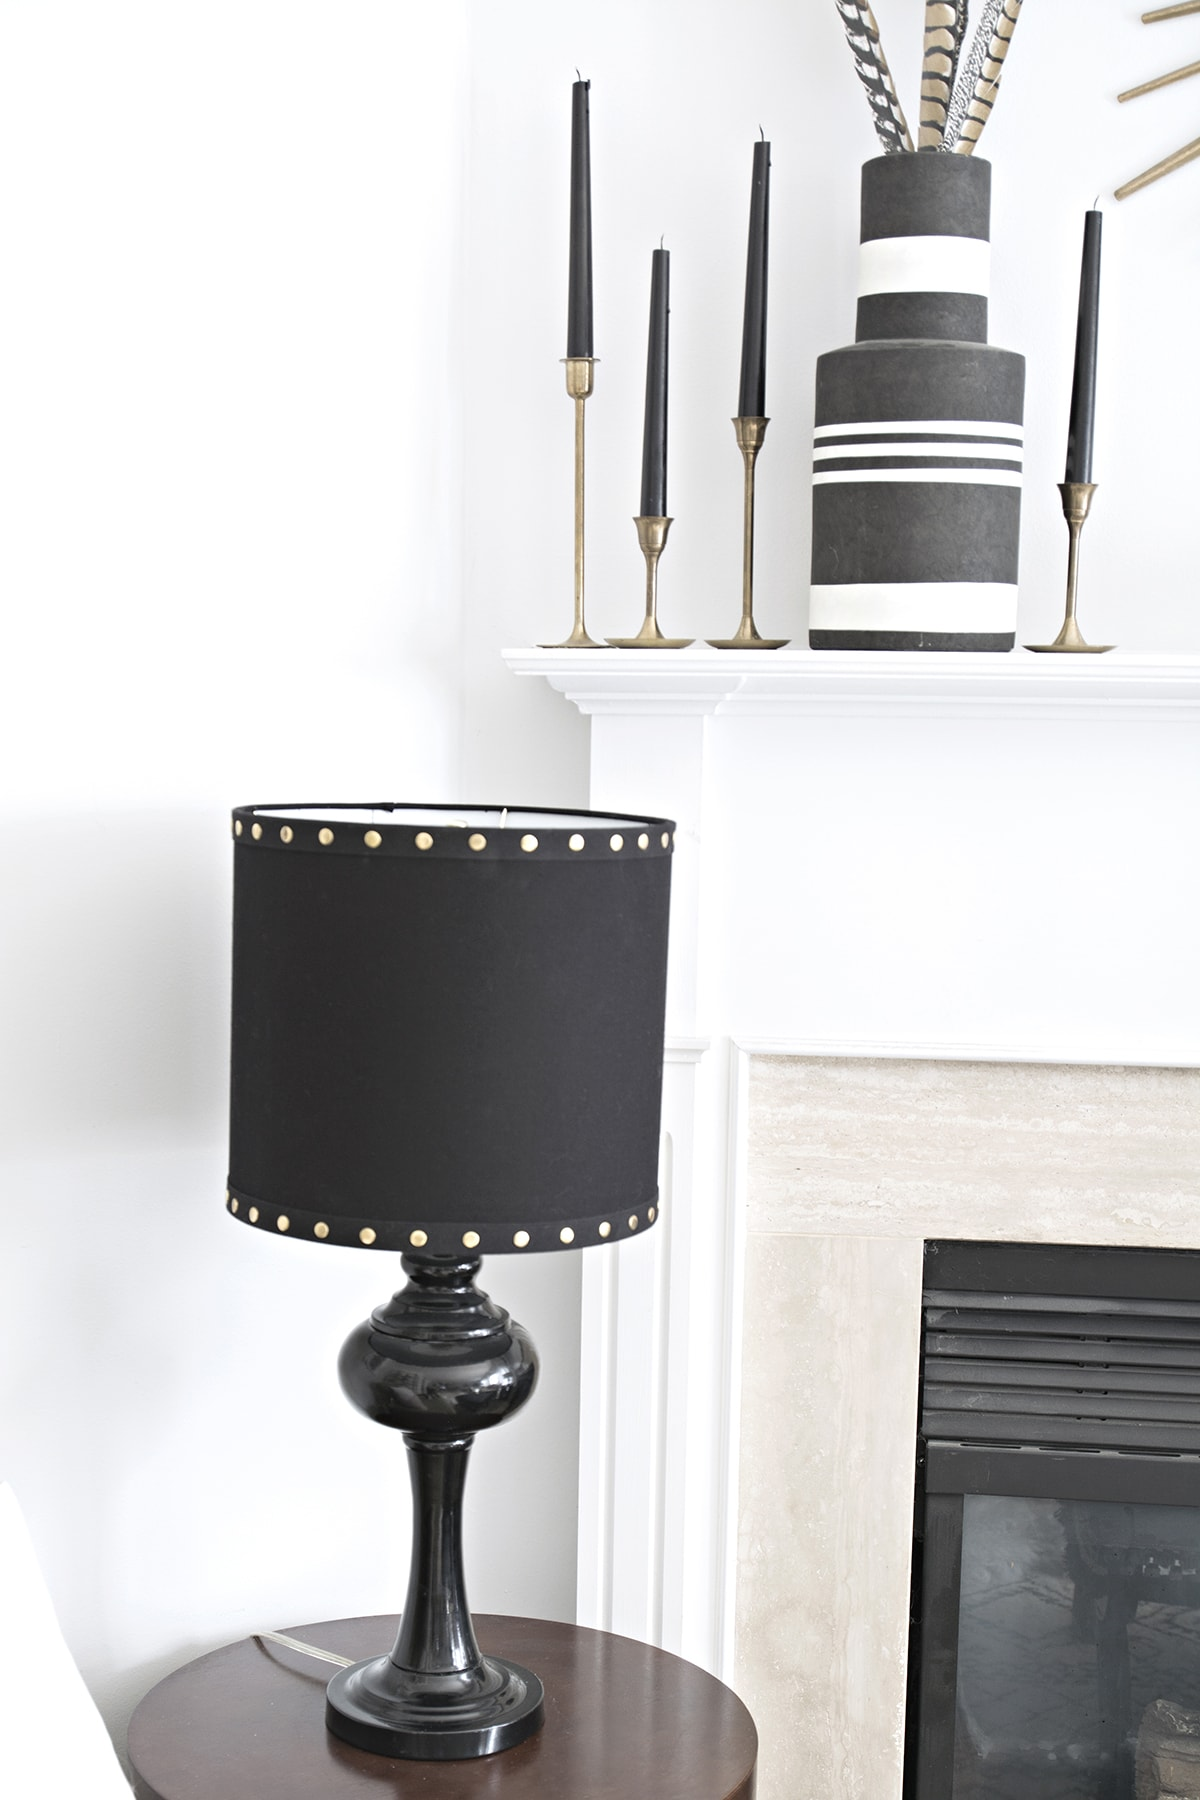 Small decor changes how to add a harp to a lamp cuckoo4design i searched high and low for the same shades online and just couldnt find them its just another lucky homegoods find and im sorry i cant share a link aloadofball Images